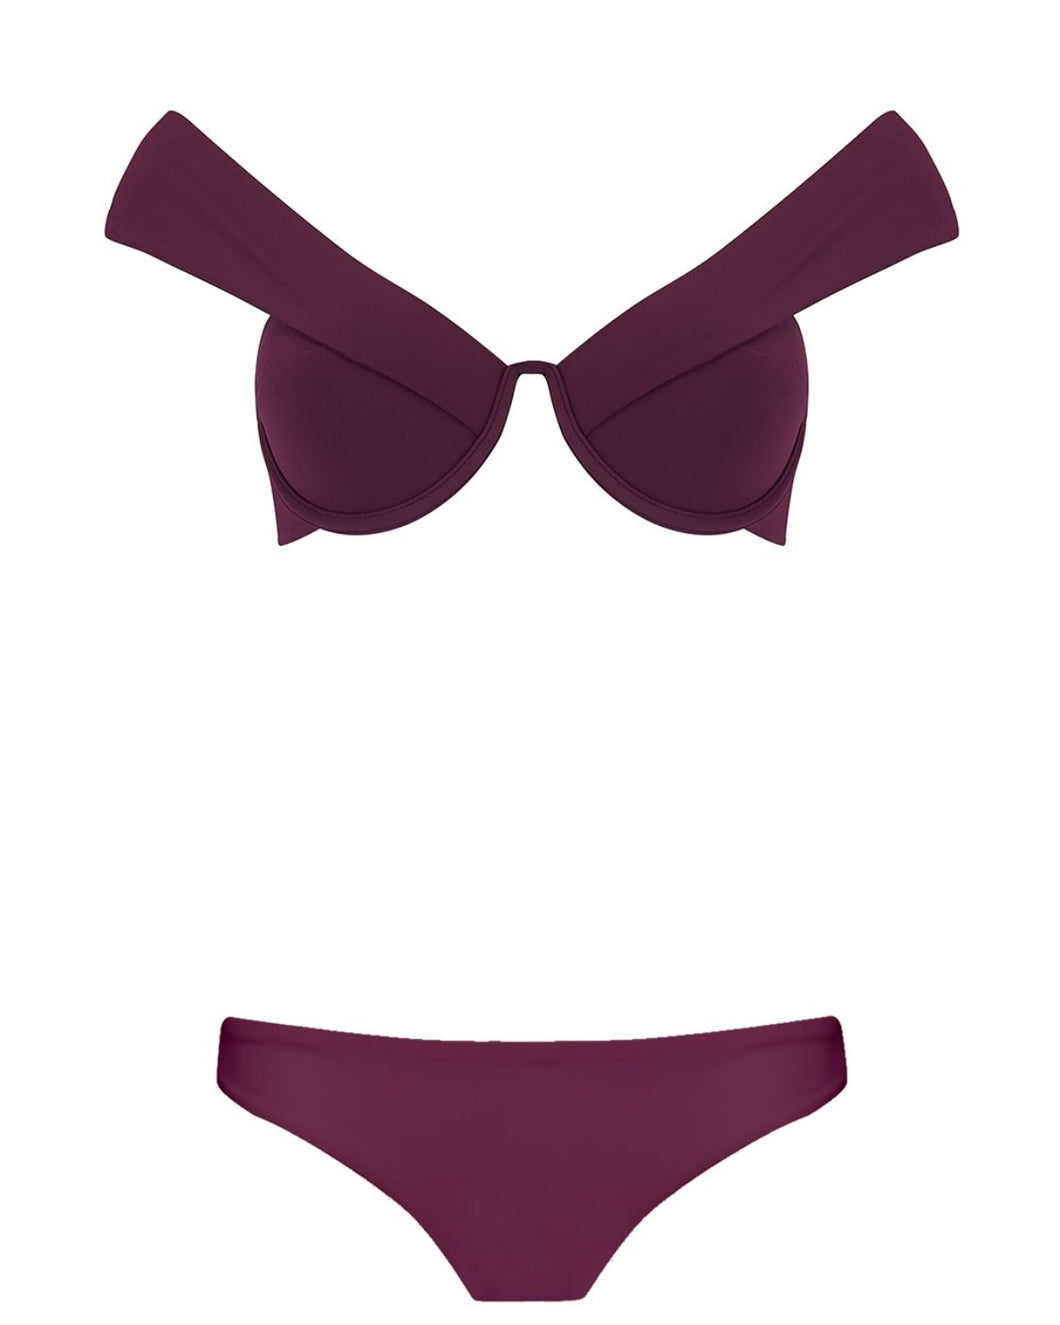 The Seamless Low Rise Brief - Plum